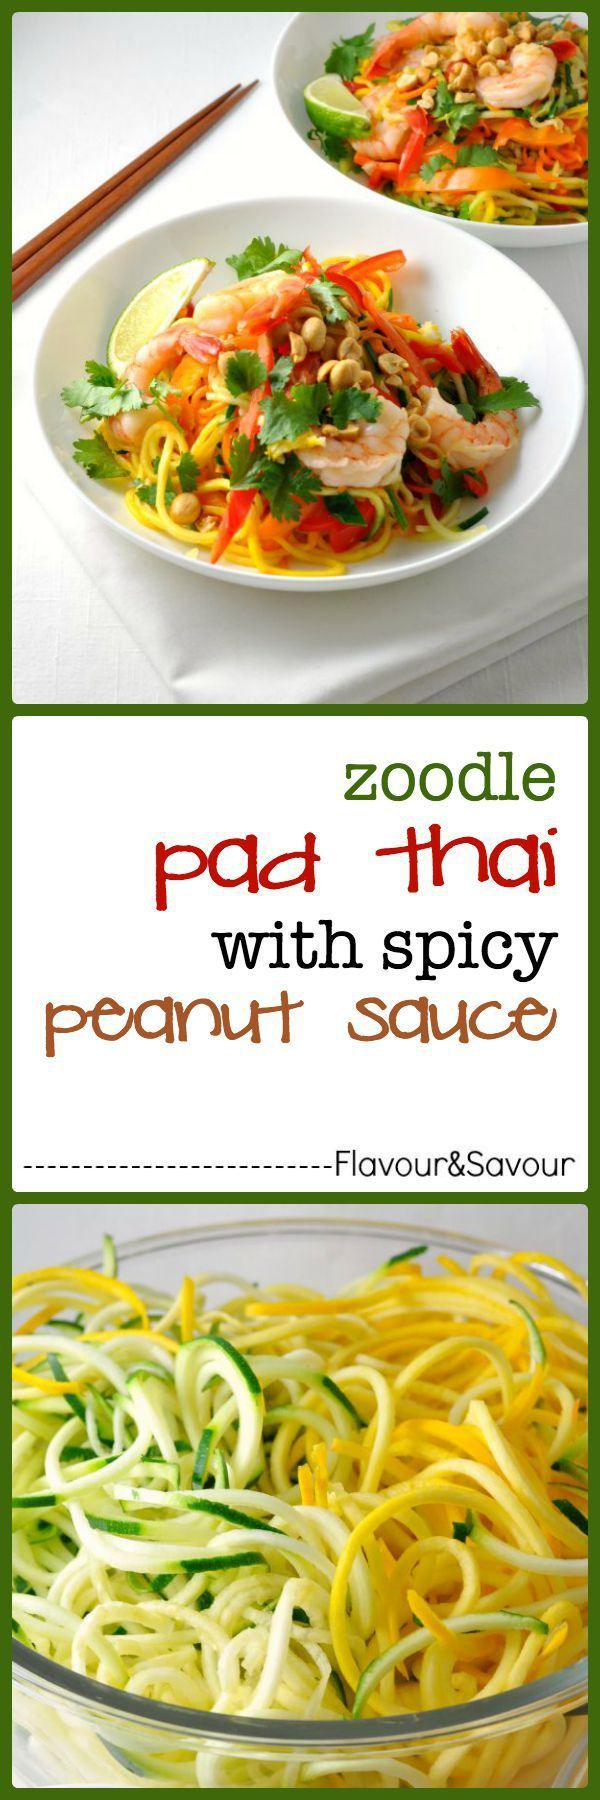 Zoodle Pad Thai with Shrimp and Peanut Sauce. It's a meal-in-a-bowl, filled with a variety of fresh seasonal vegetables on a bed of zucchini noodles, topped with shrimp and tossed in a spicy peanut sauce. It has all the flavour of traditional Pad Thai, but features fresh colourful veggies instead of rice noodles.